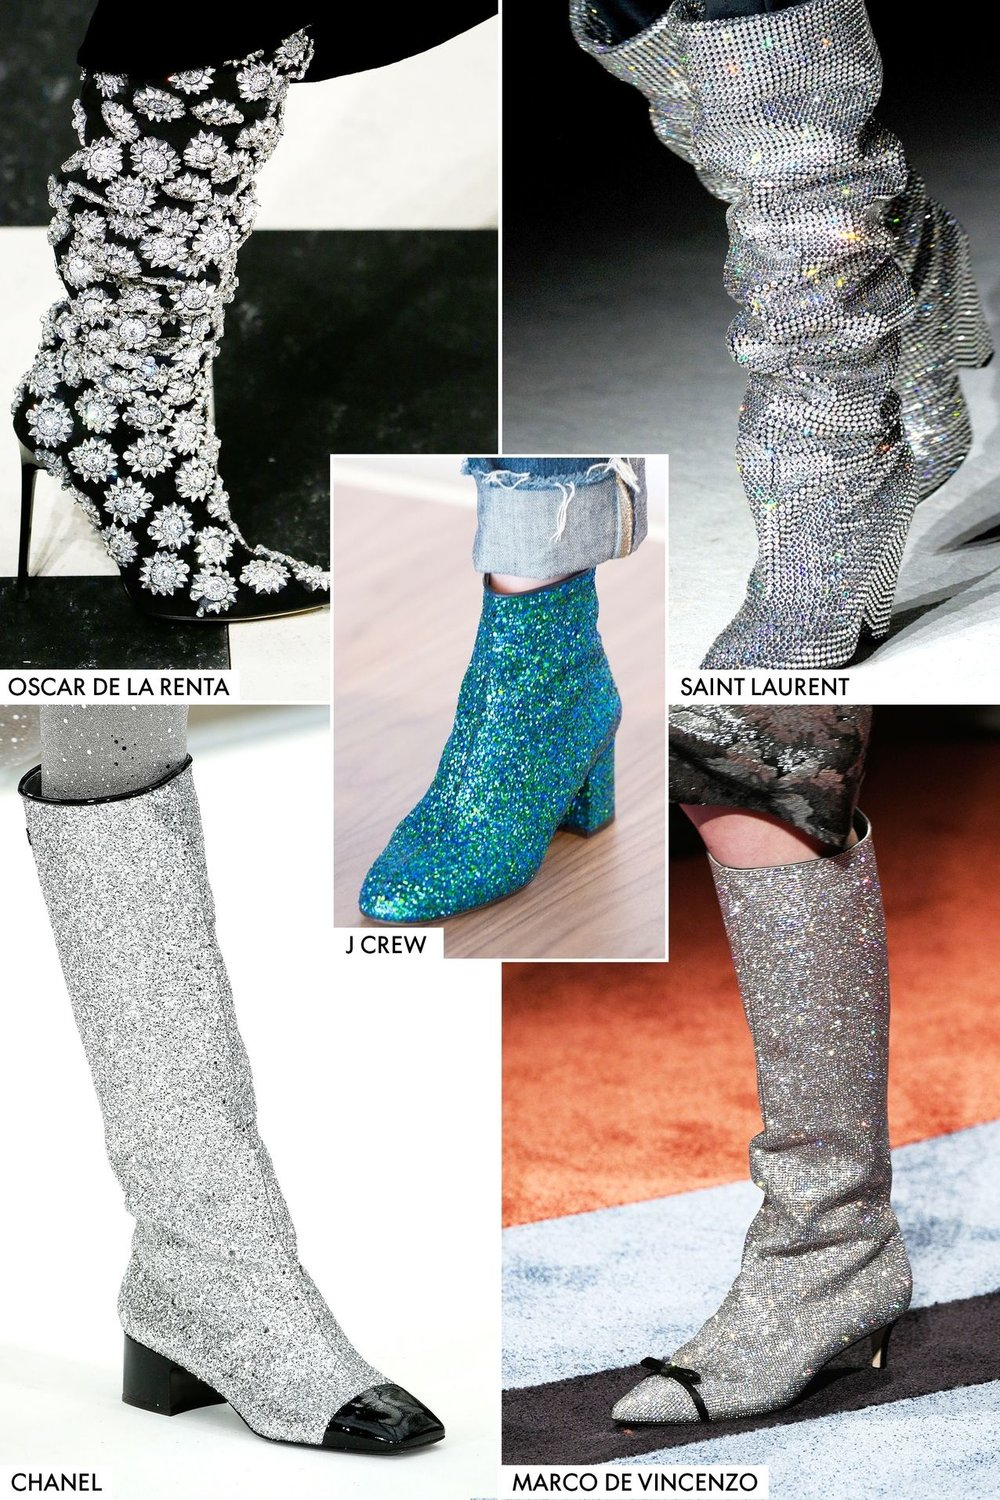 Having a pair of these in your closet would even make Ziggy Stardust jealous. Slap these bad boys on with any jean/jacket/dress combo and Ziggy wont be the only jelly belly. This is your new staple Fall boot!! Photo Credit Elle Magazine